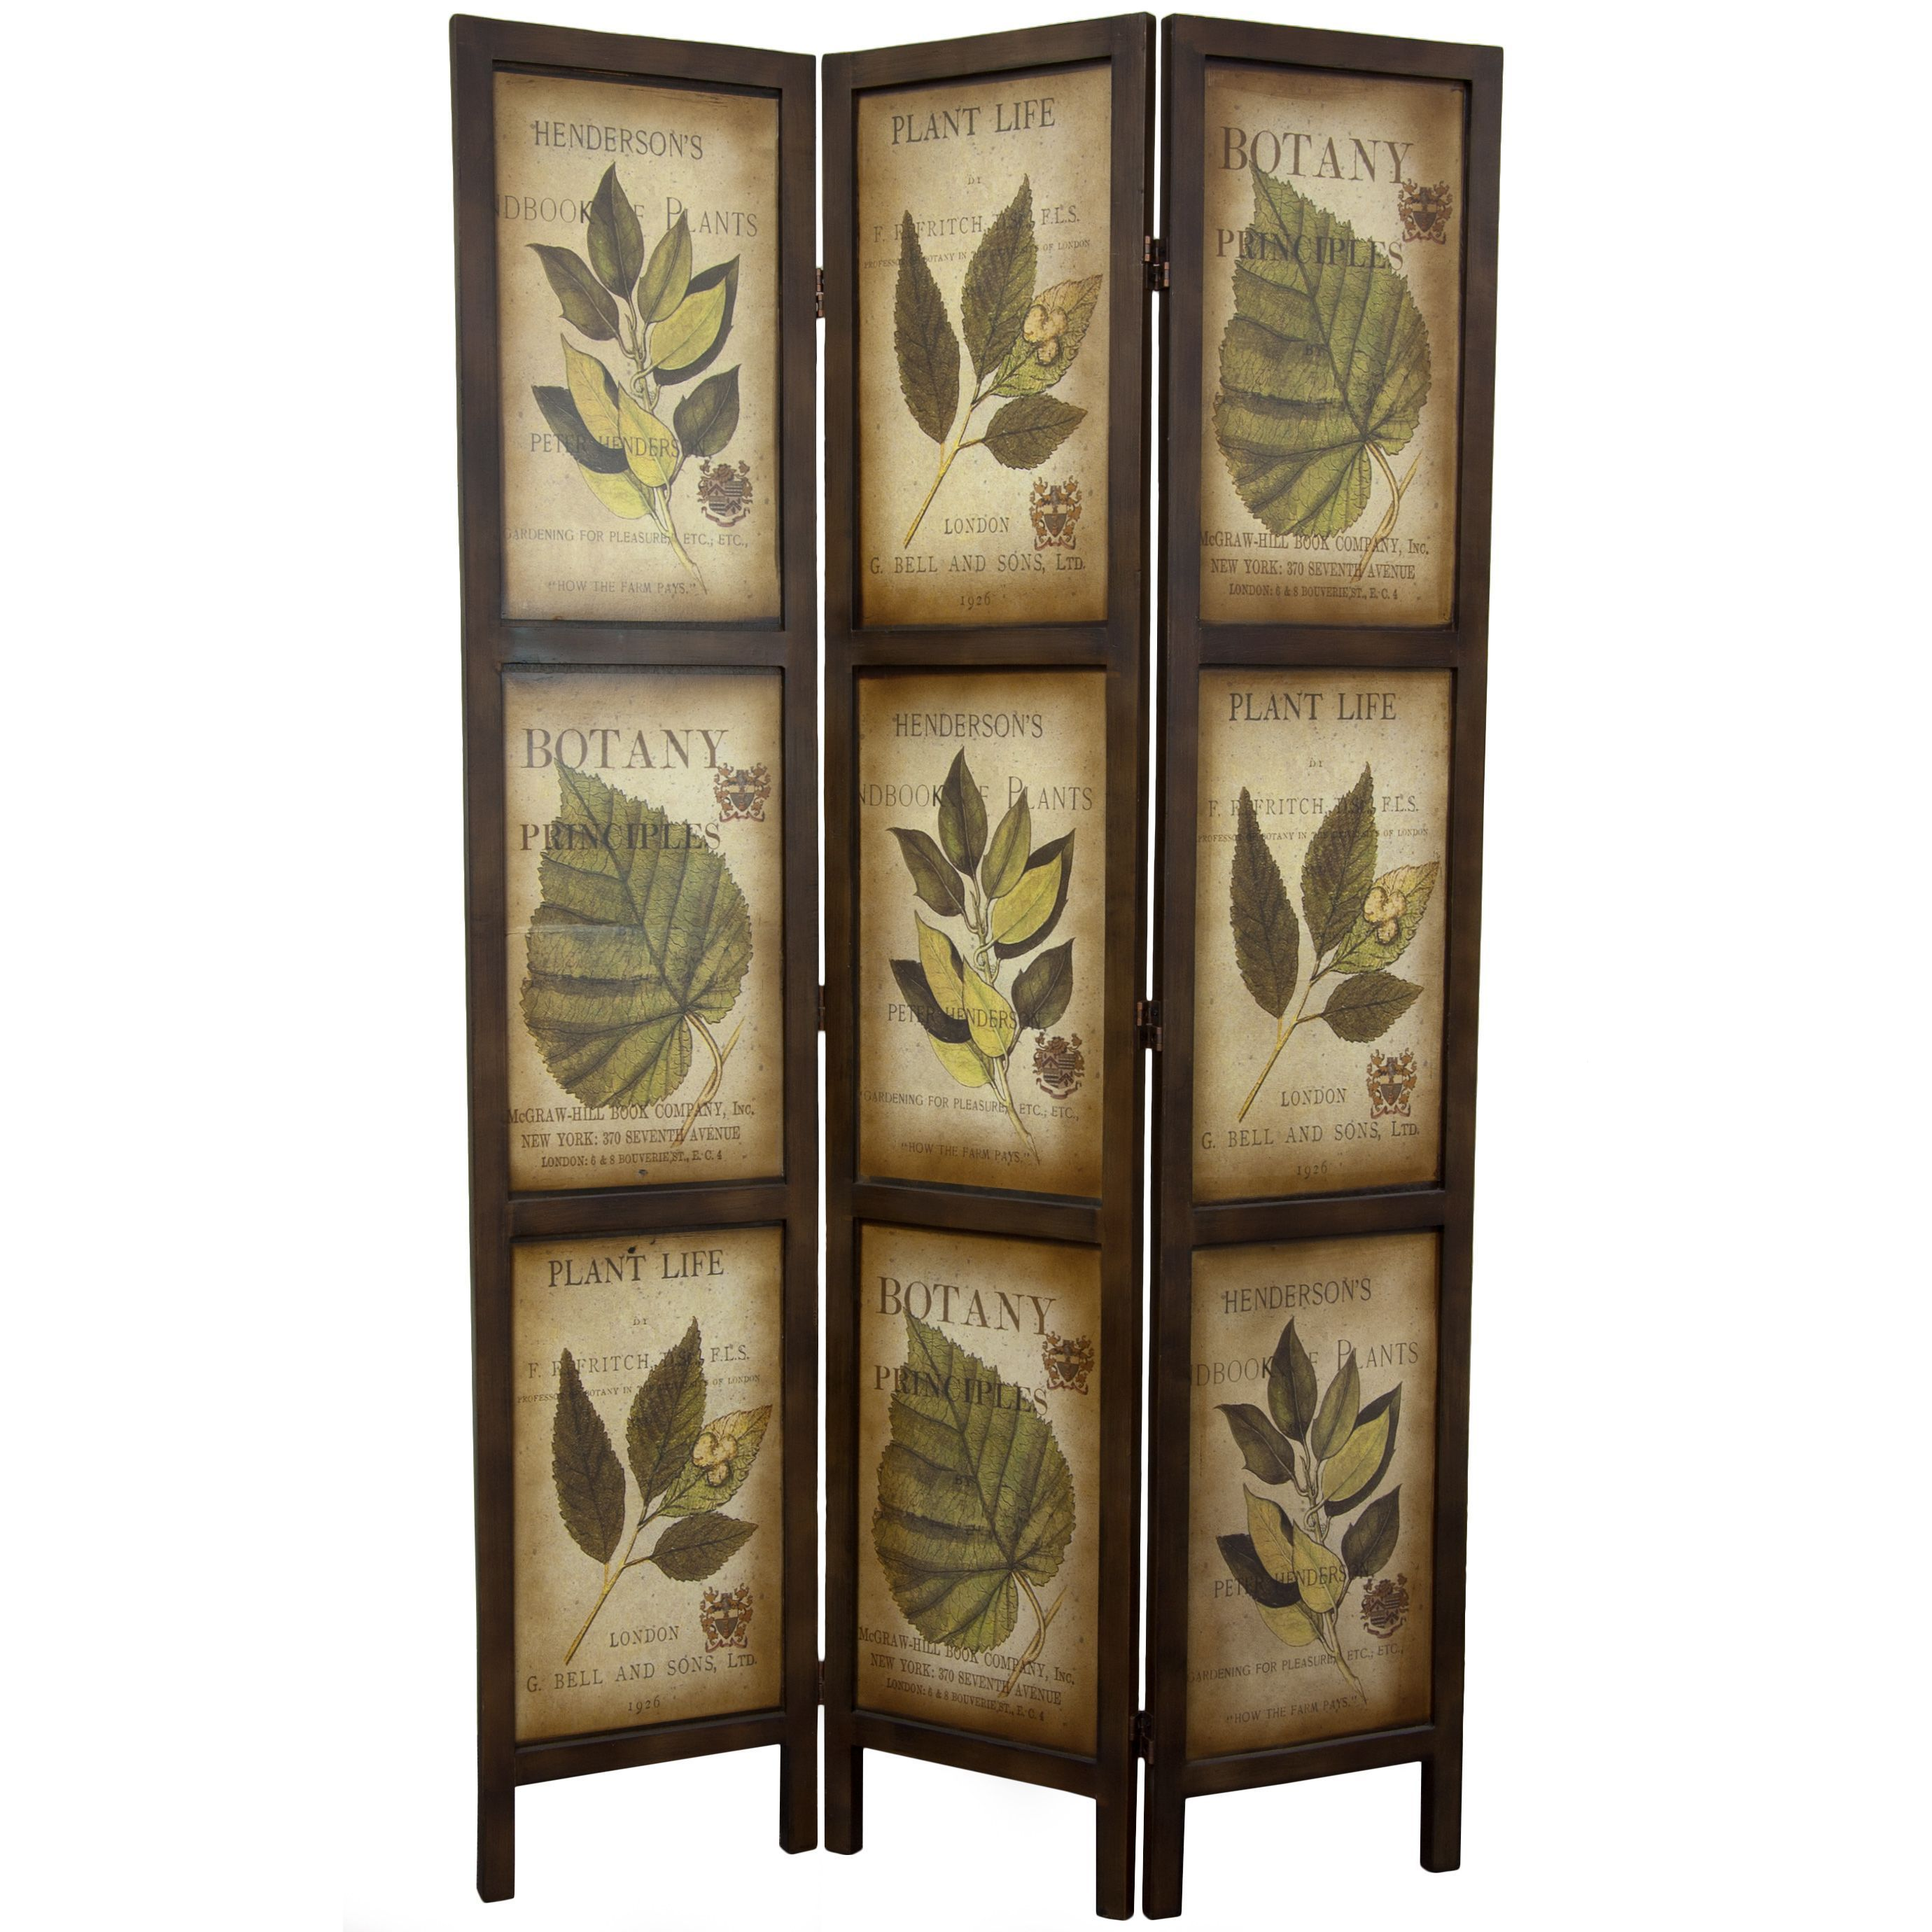 ft double sided botanic printed wood room divider free shipping